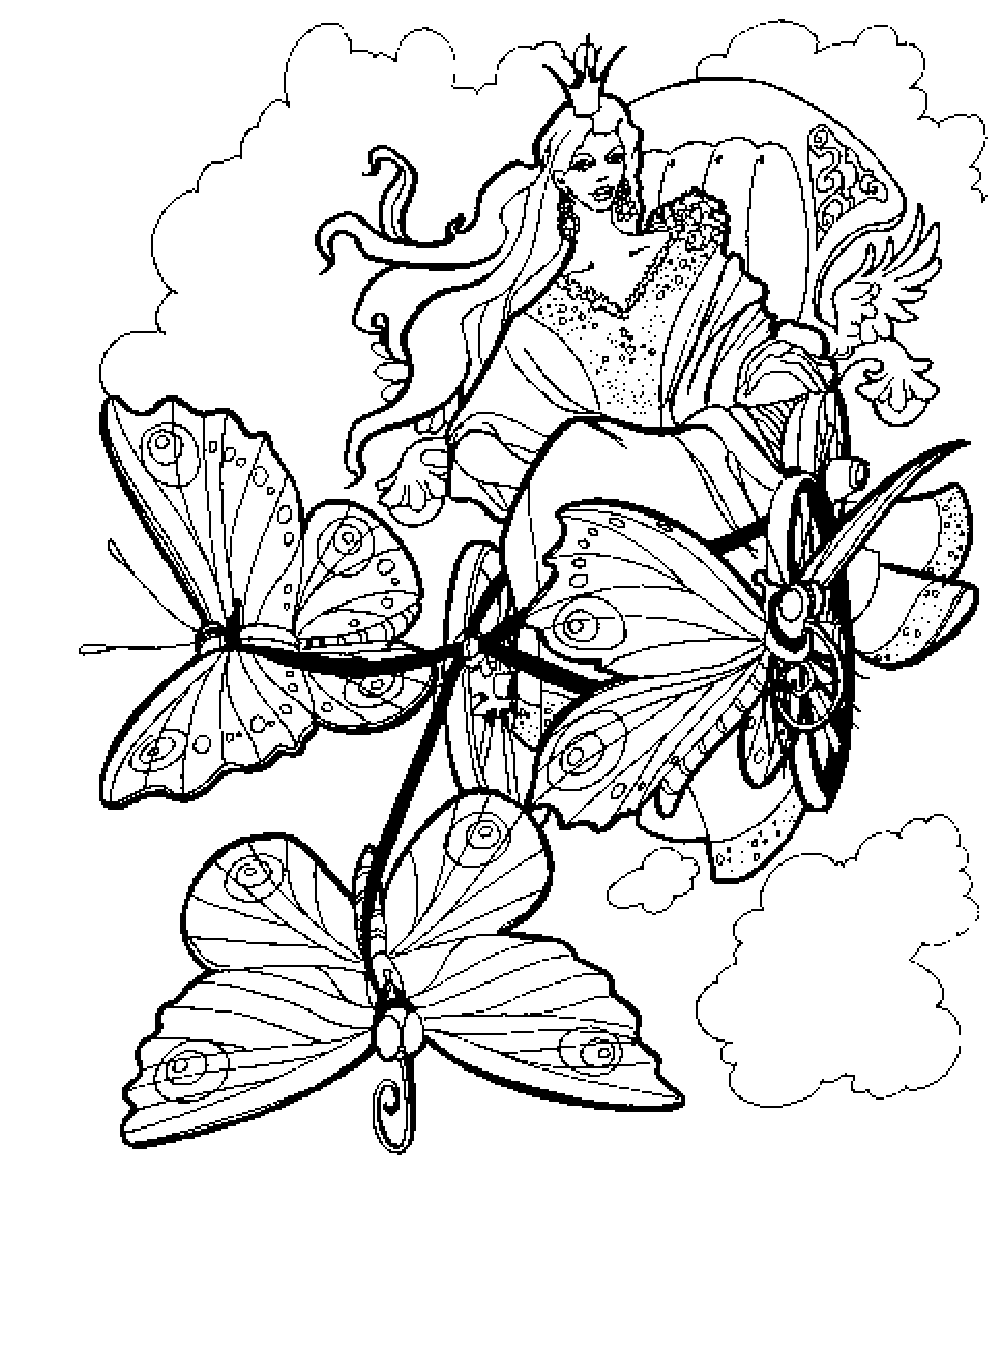 wwwfree coloring pagescom hoopoe coloring page free printable coloring pages pagescom wwwfree coloring